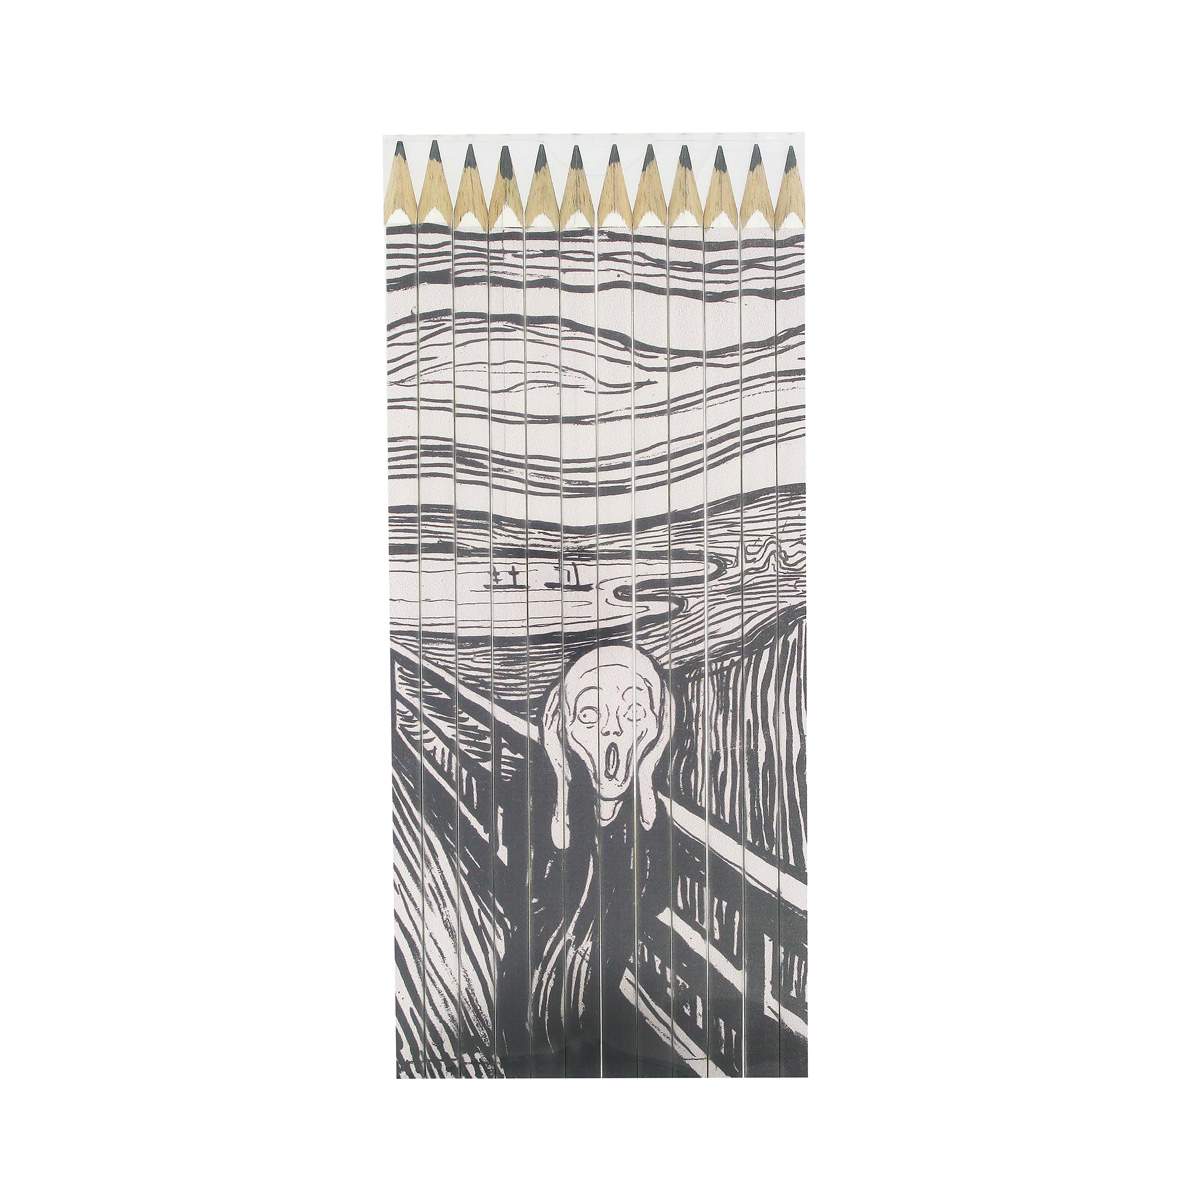 The Scream pencil set